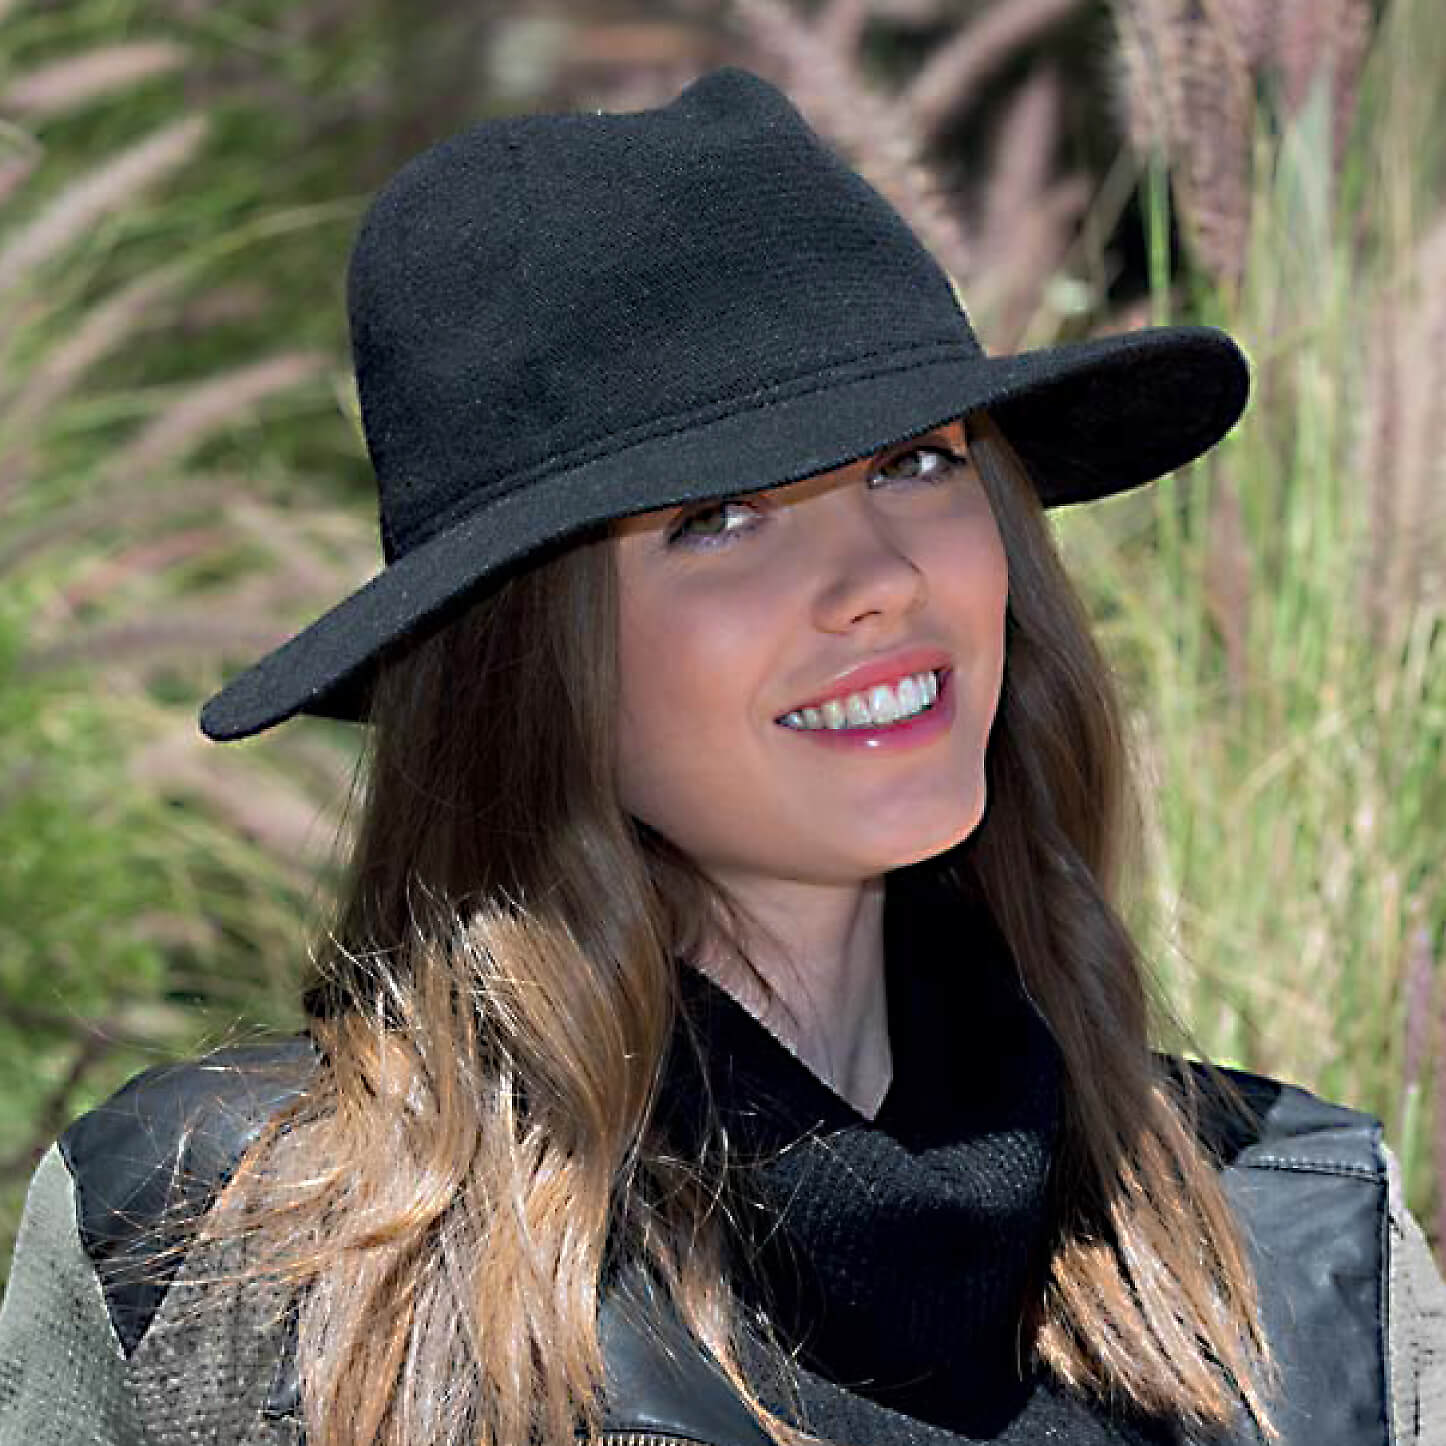 RL327 suzl lambswool fedora. High quality ladies two toned trilby, crafted from super soft lambswool, finished with a simple grosgrain ribbon headband.